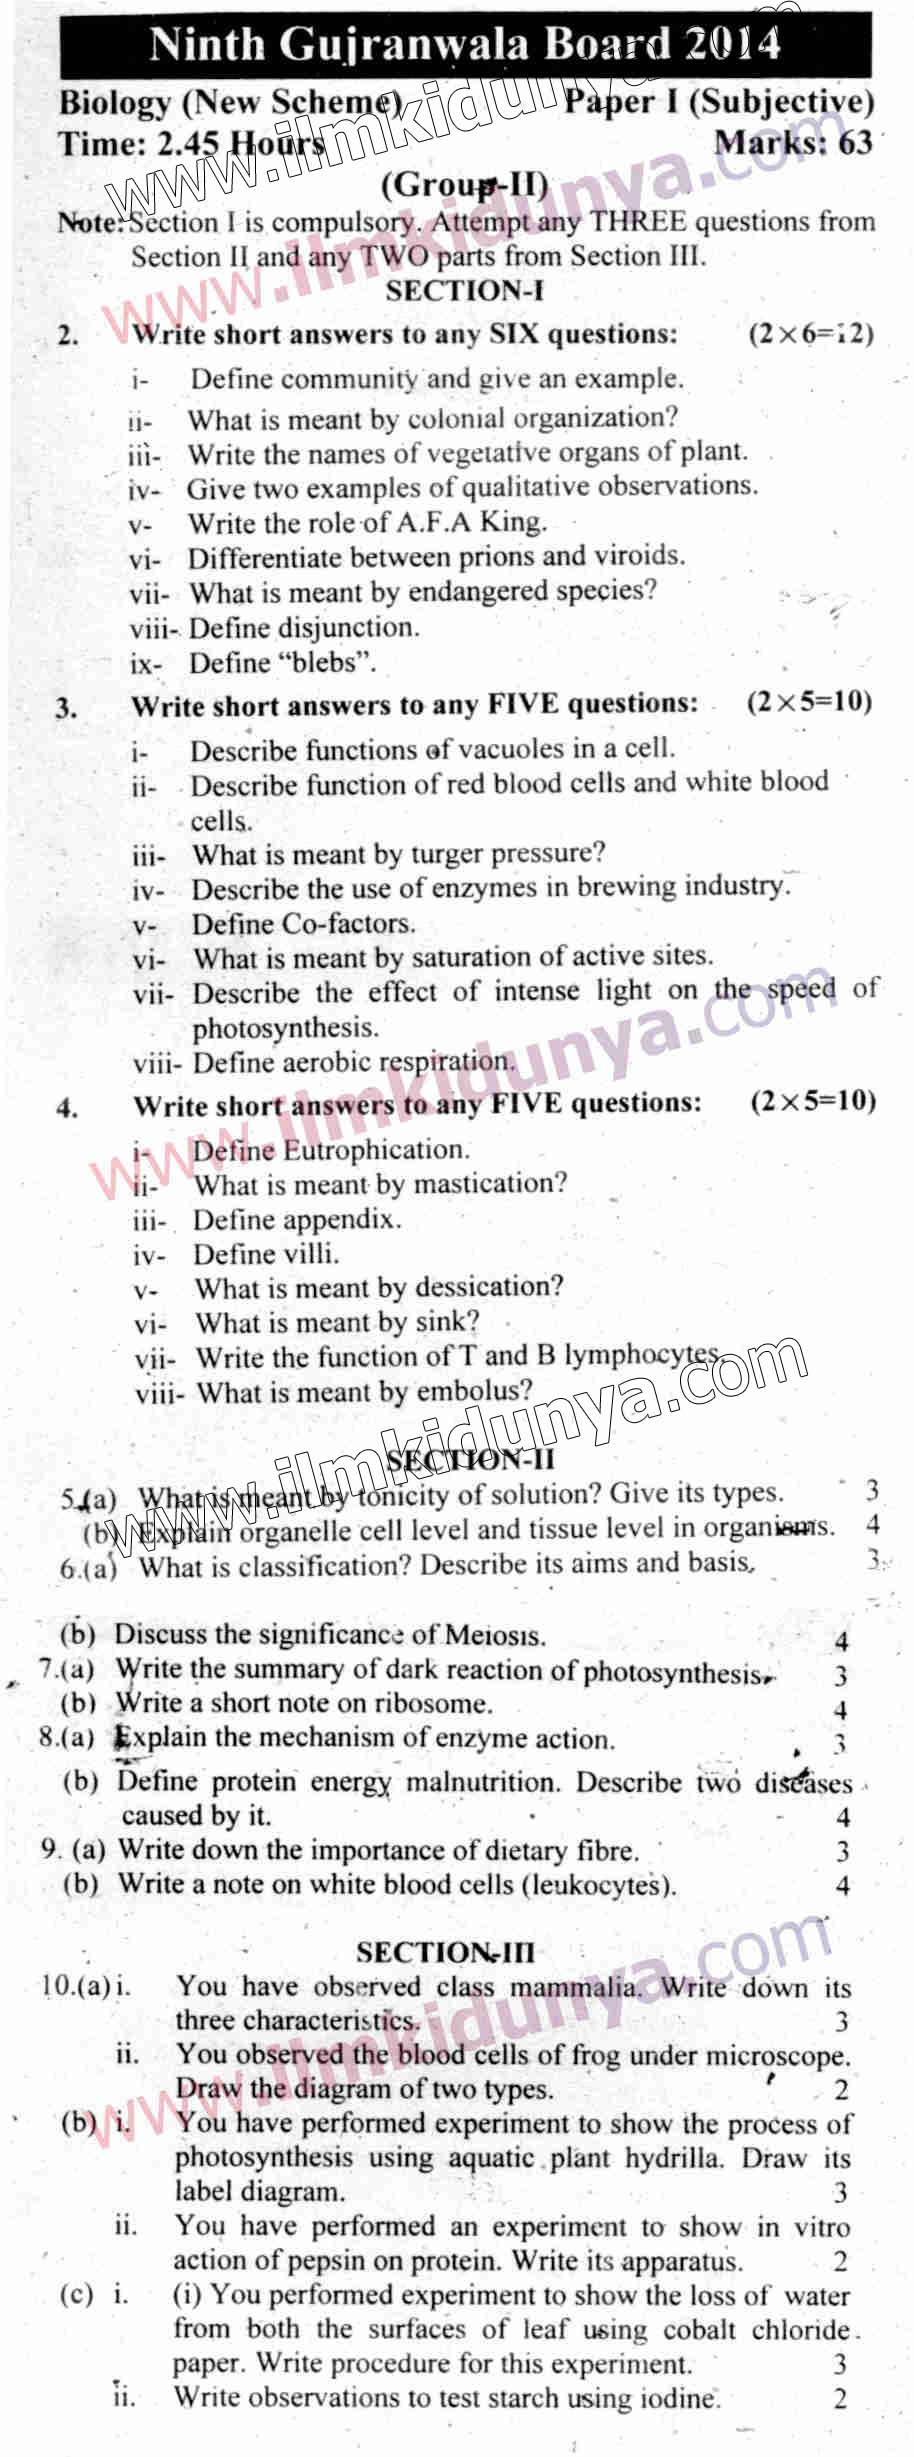 Past Papers 2014 Gujranwala Board 9th Class Biology